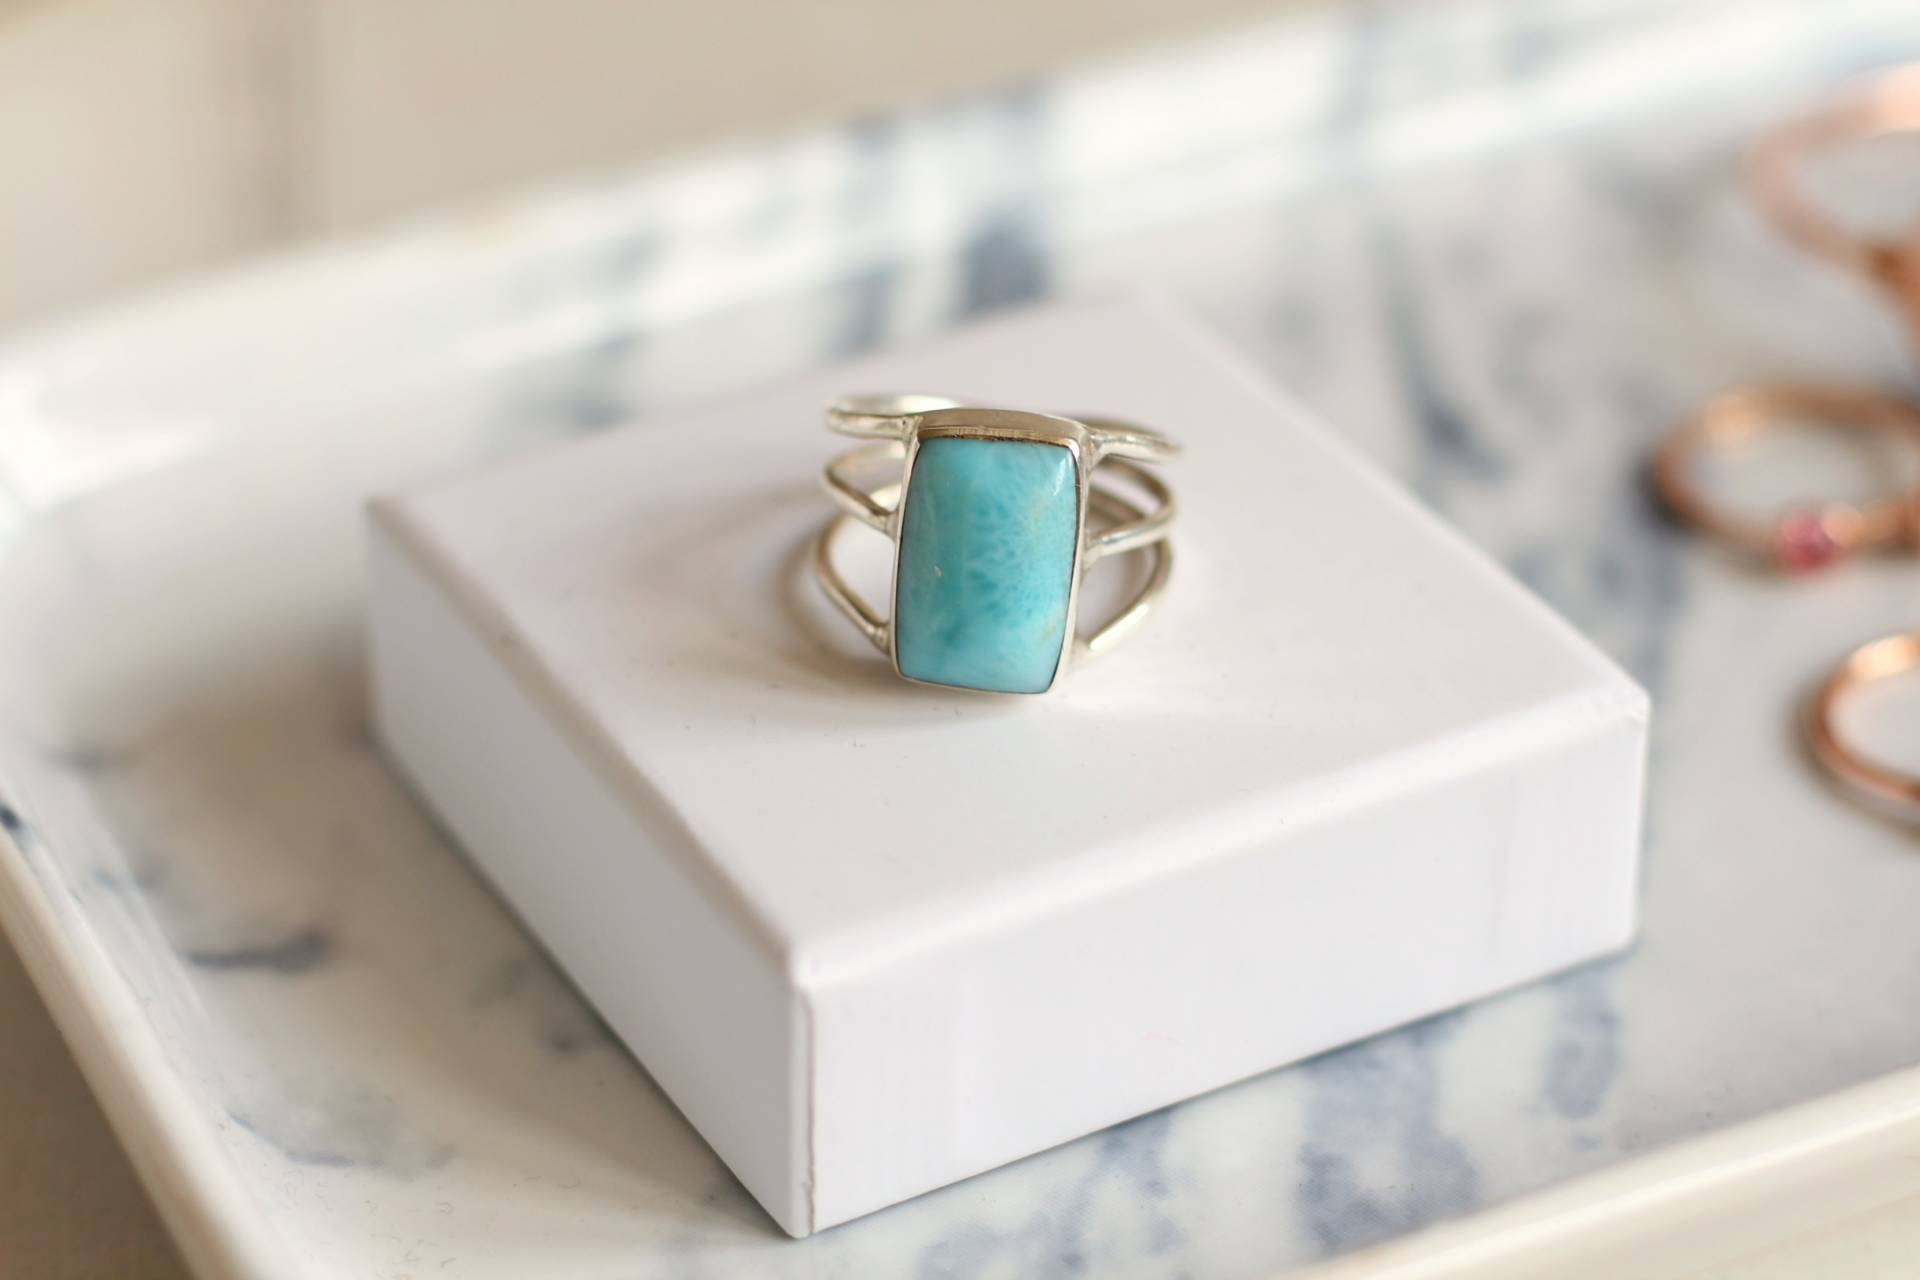 A new jewellery addition from Larimar Bliss